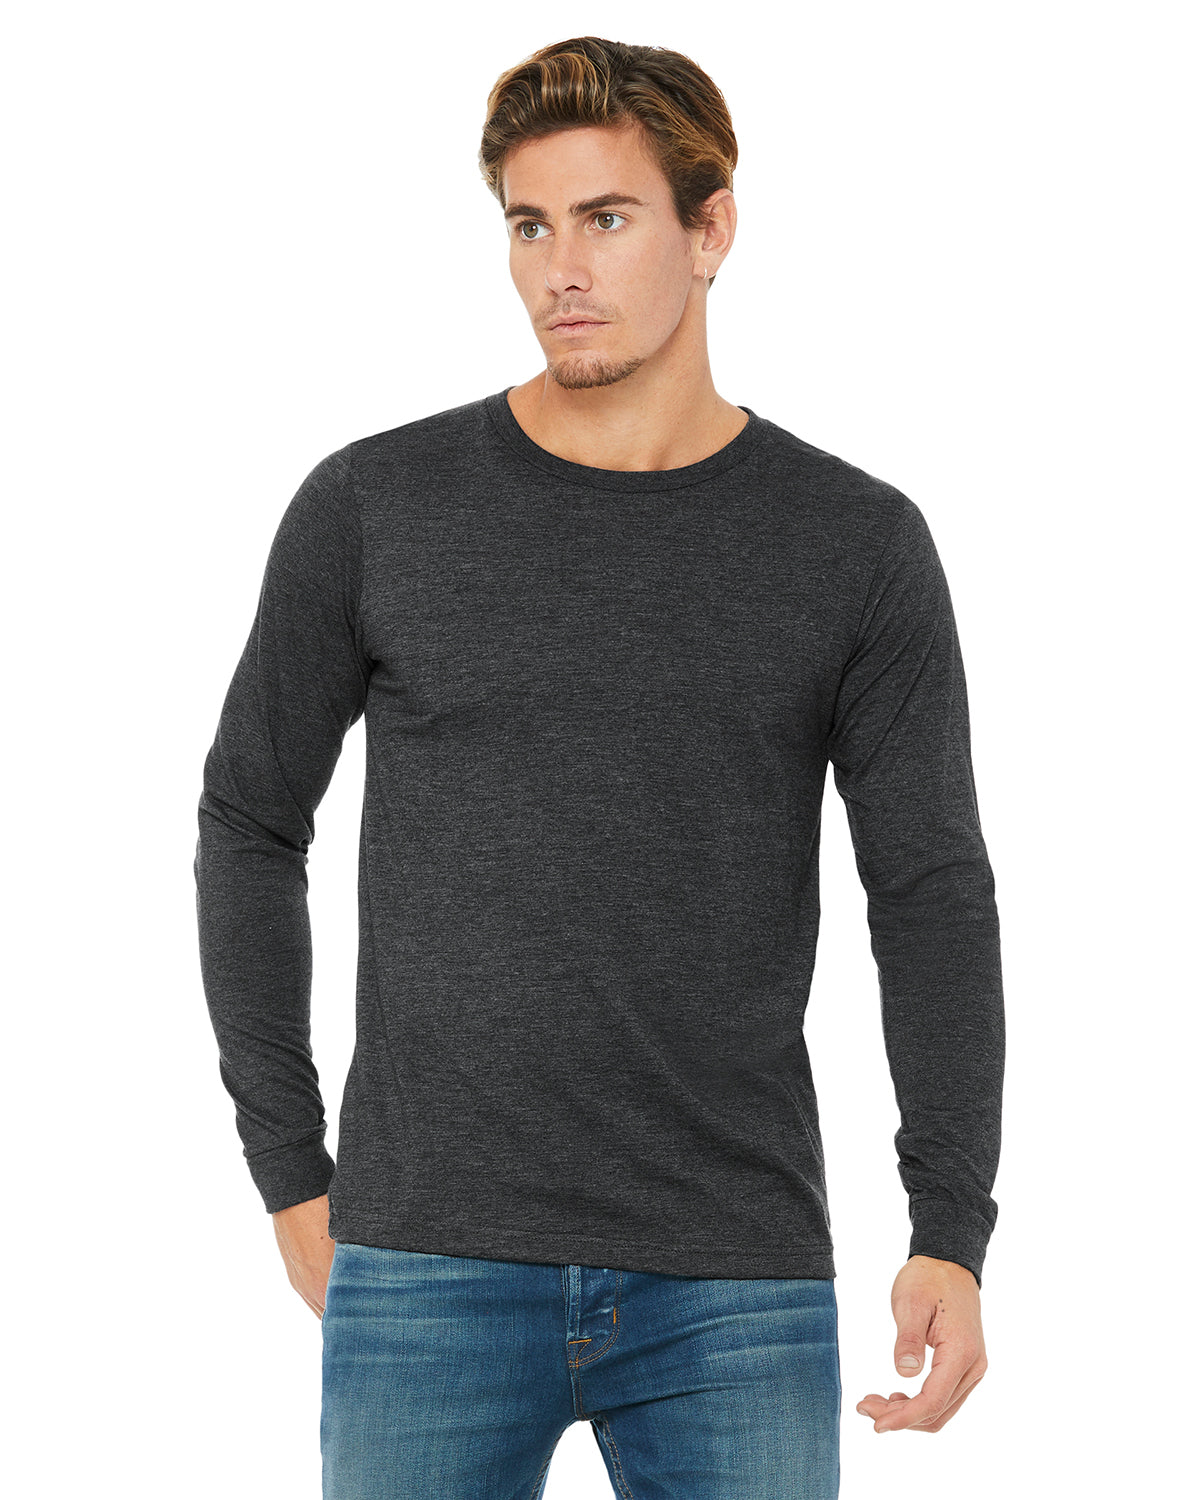 Unisex Premium Long Sleeve T-Shirt